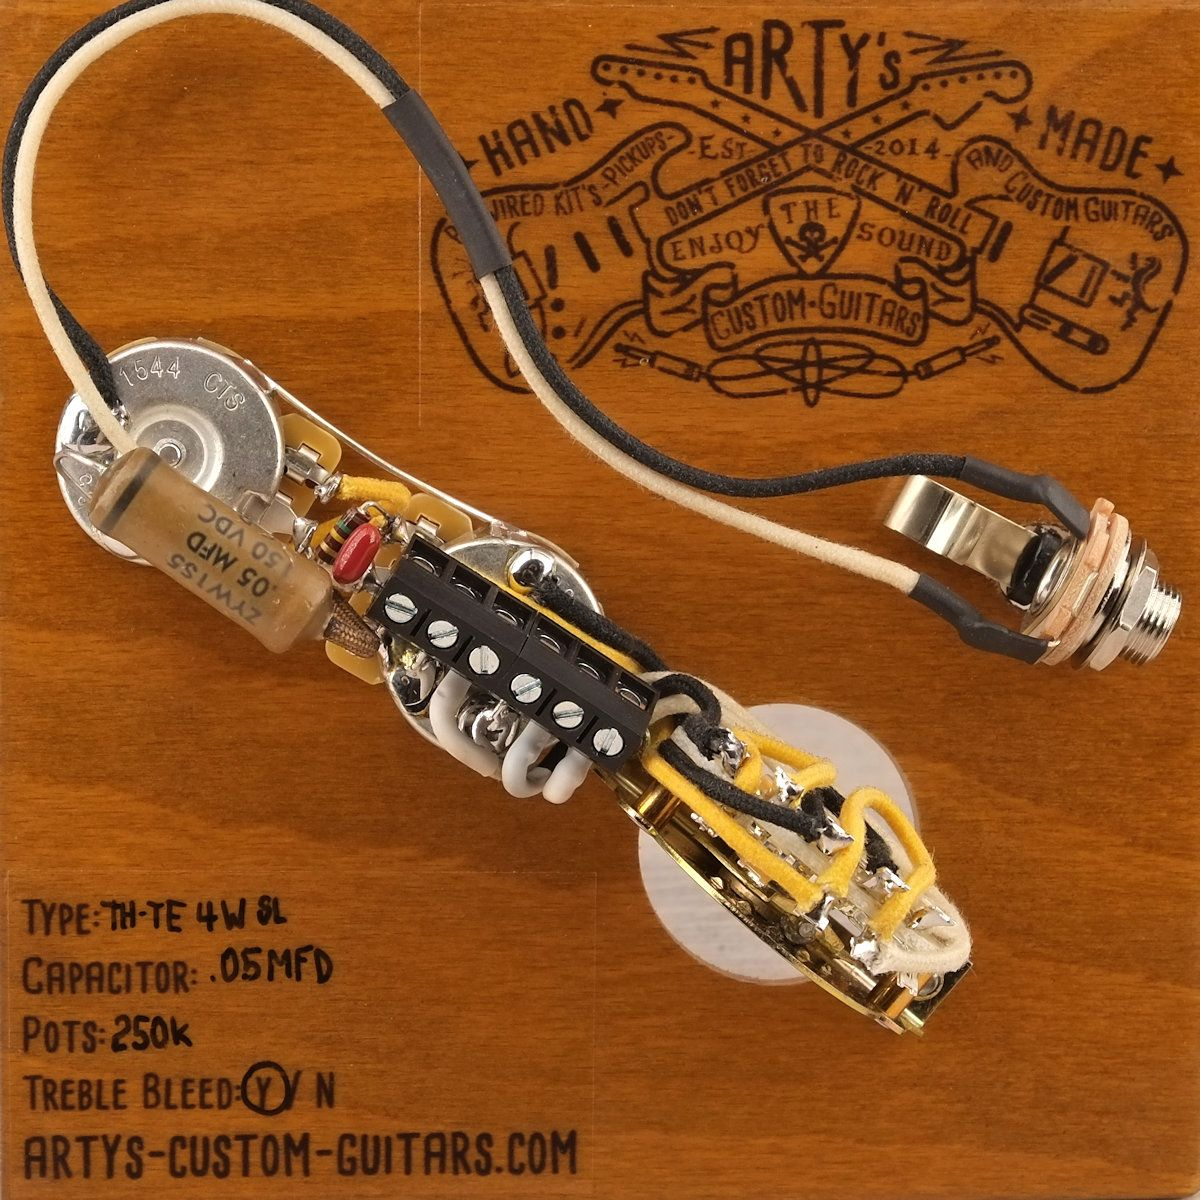 Artys Custom Guitars 4 Way Thinline Telecaster Standard Wiring Kit Guitar Pickup Harness Solderless Pre Wired Prewired